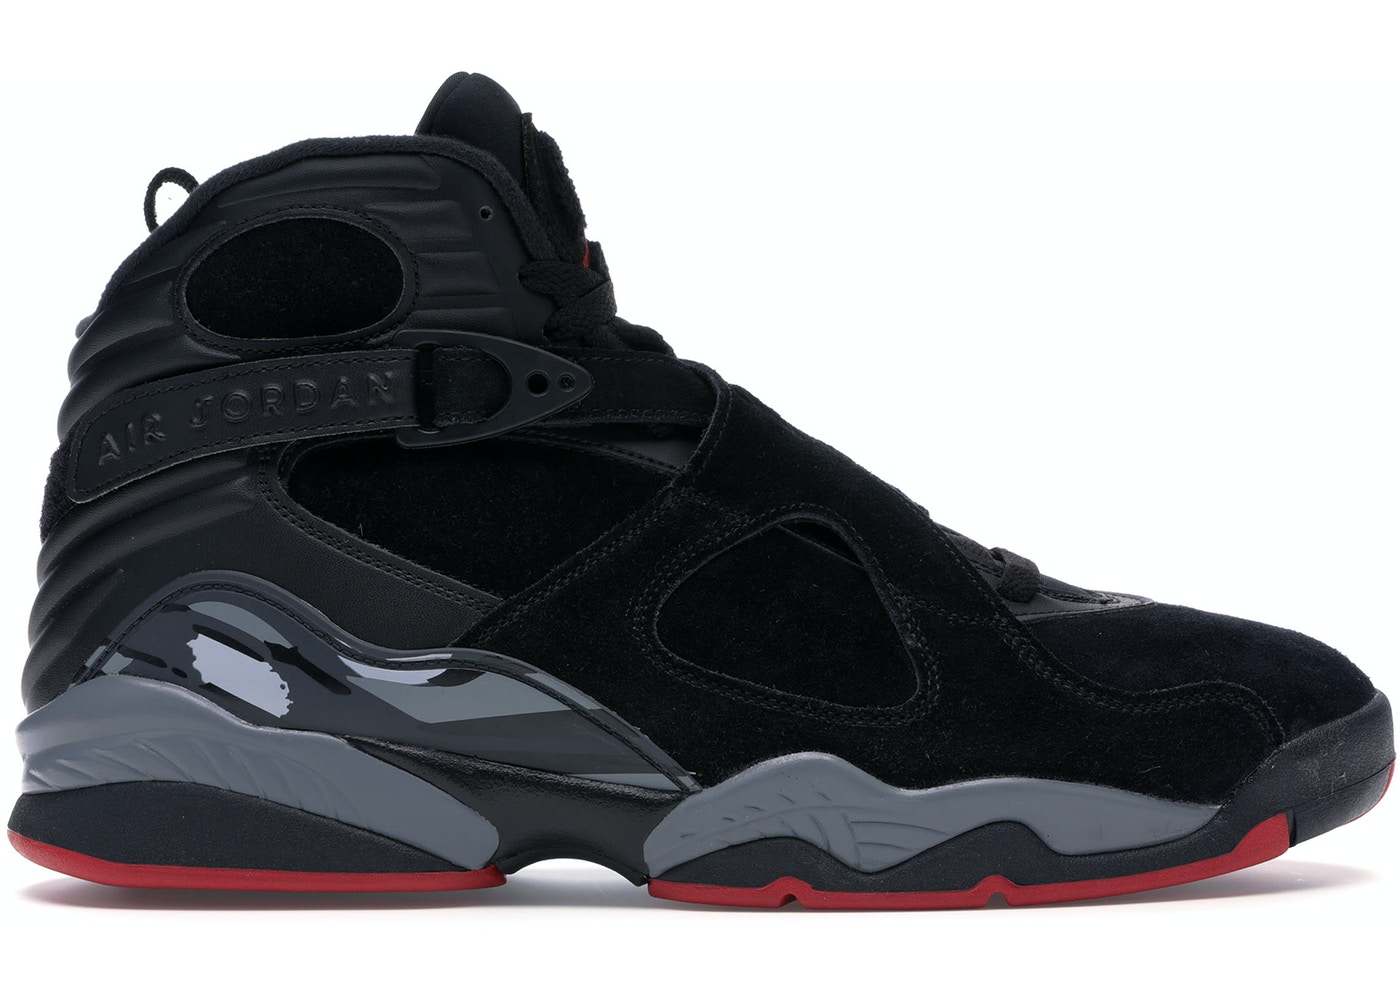 best sneakers 88a55 5e4da Jordan 8 Retro Black Cement - 305381-022